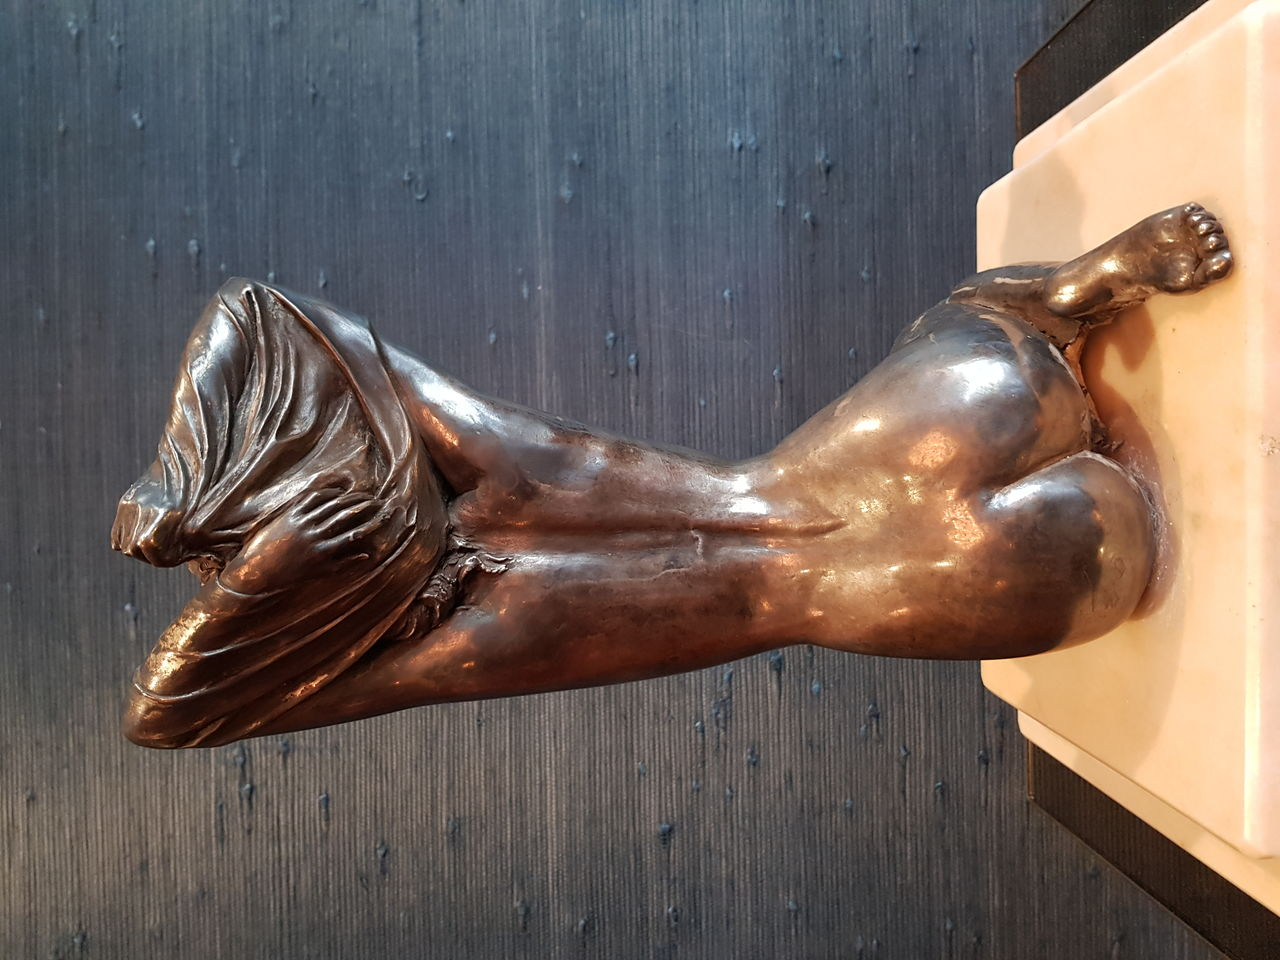 Bronze Nude sculpture by Vittotio Tessaro